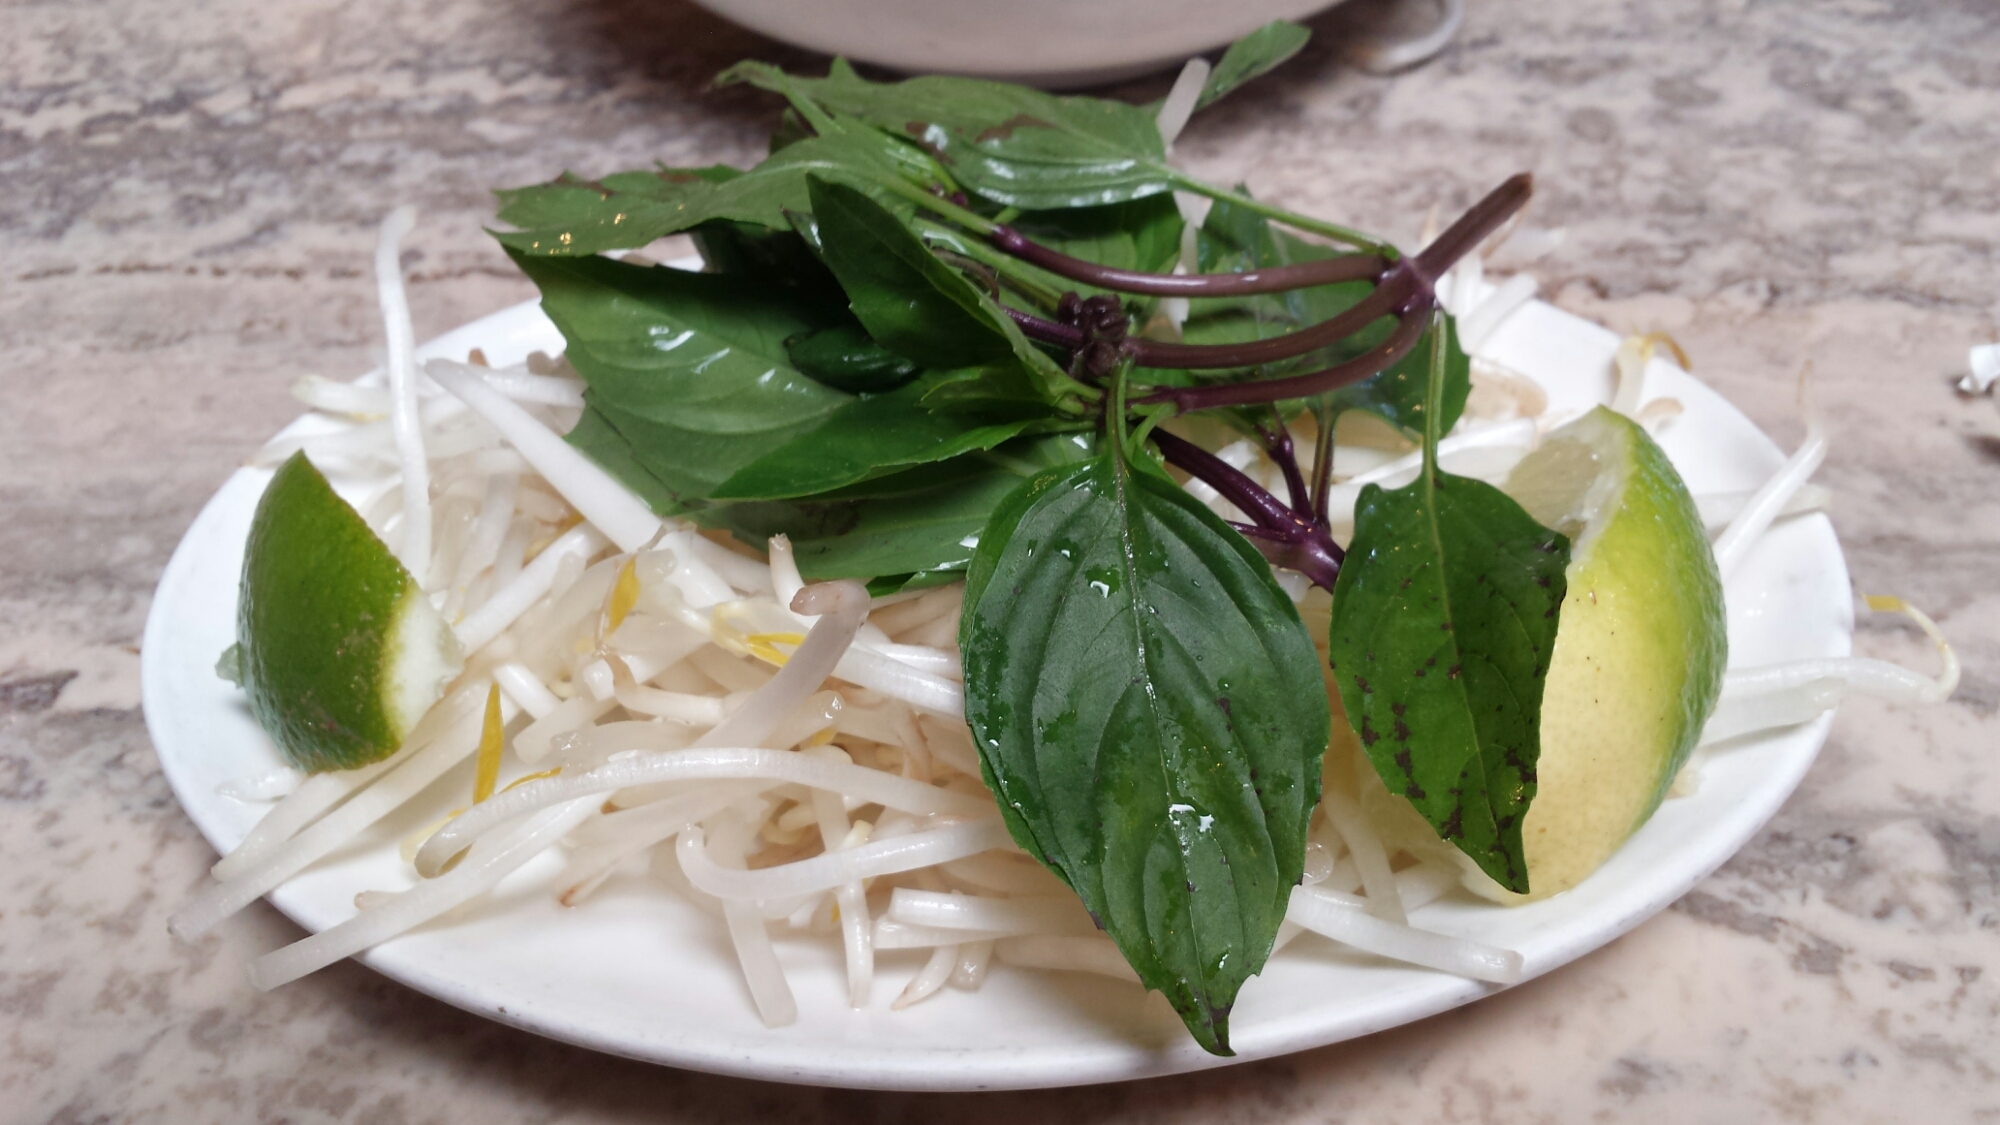 Accessories - Lime, Basil Leaves, Bean Sprouts